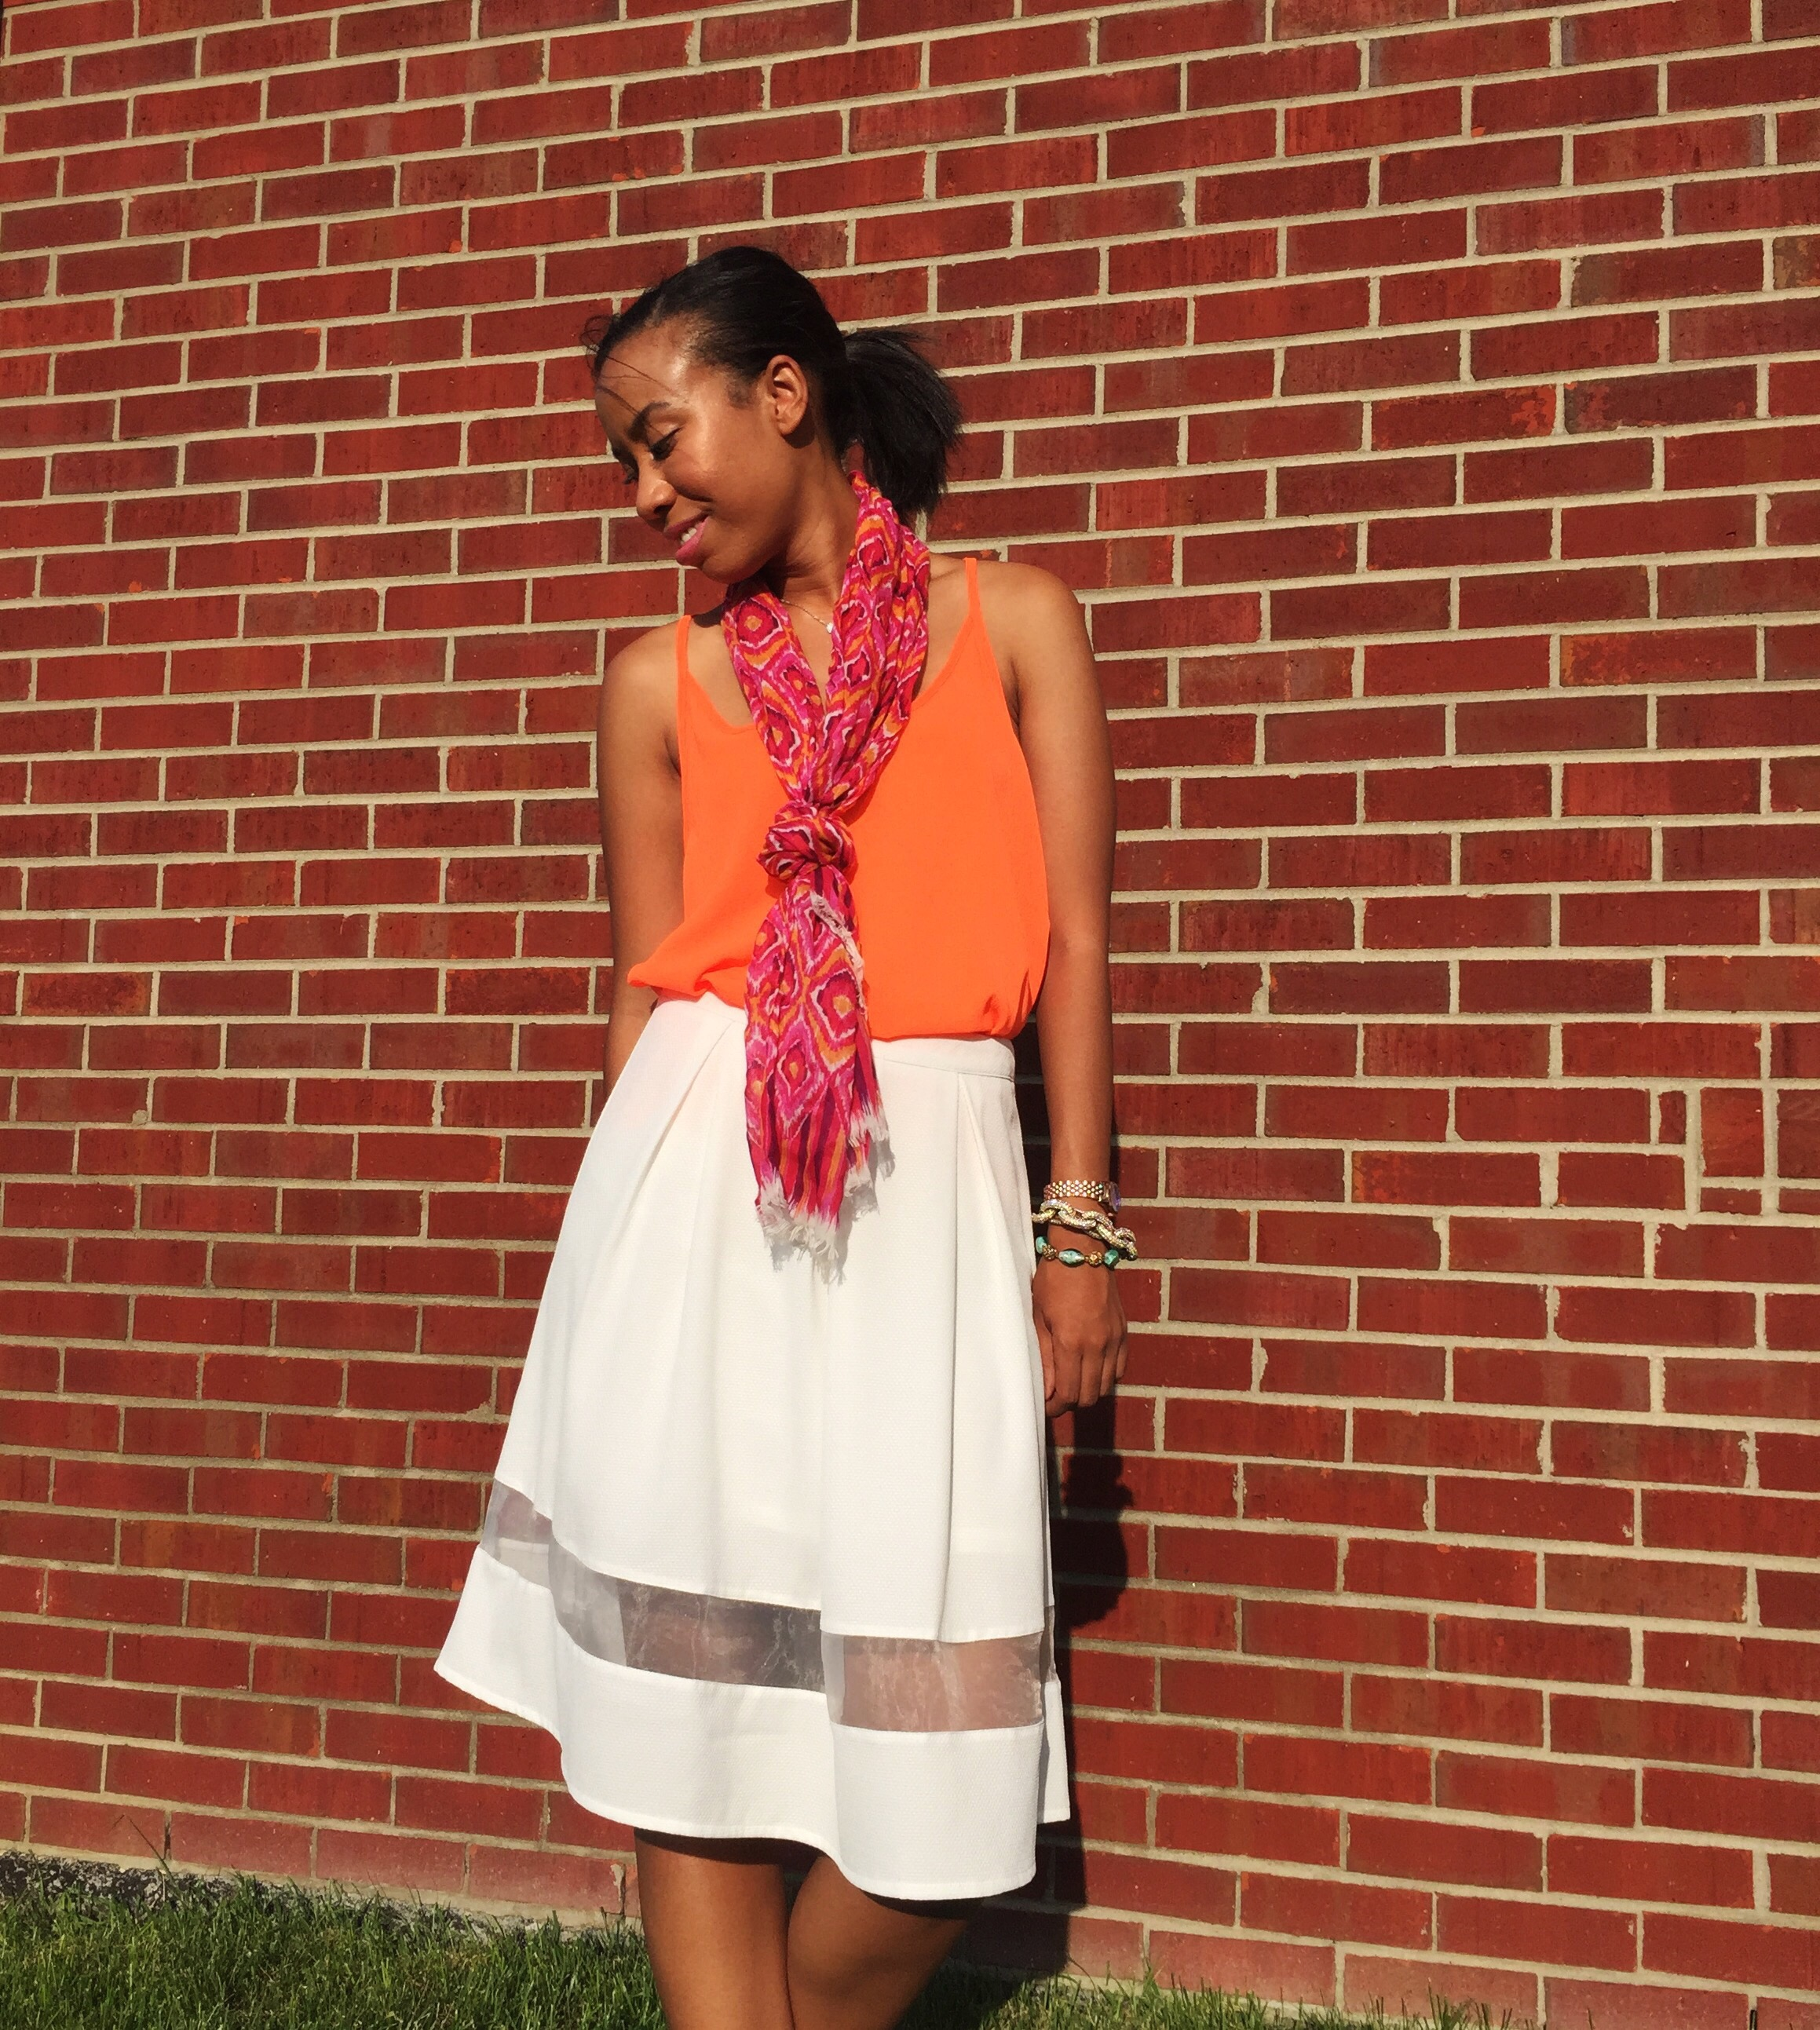 scallop tank c/o adorn apparel + cut it out skirt c/o adorn apparel + vera bradley soft fringe scarf in clementine {sold out, other colors} +